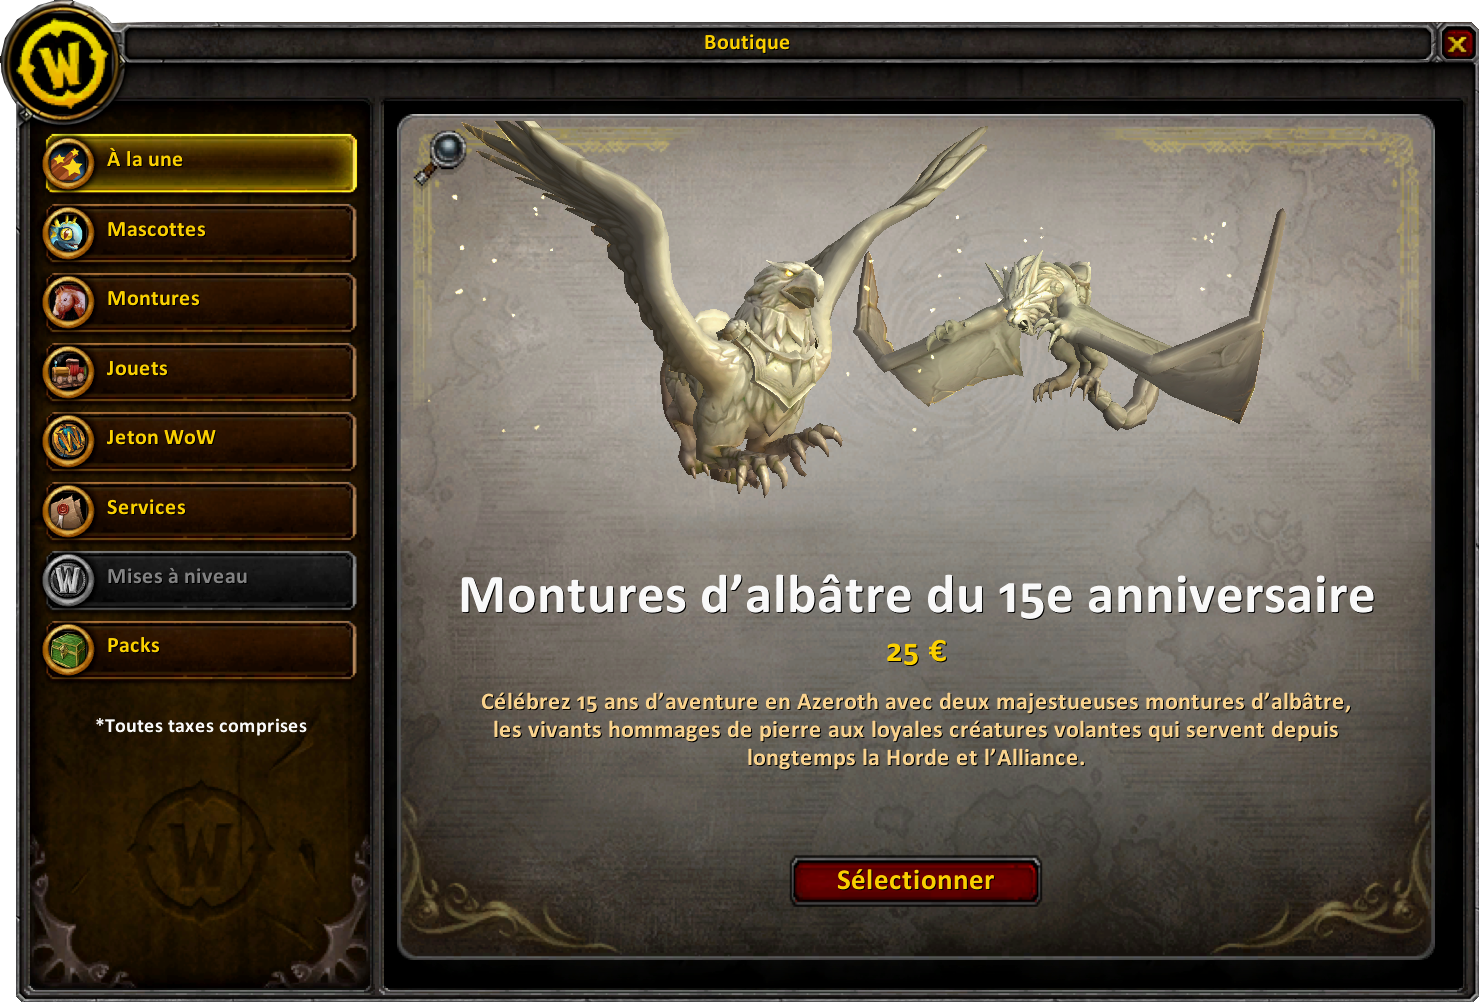 interface_boutique_monture_albatre_15eanniversaire